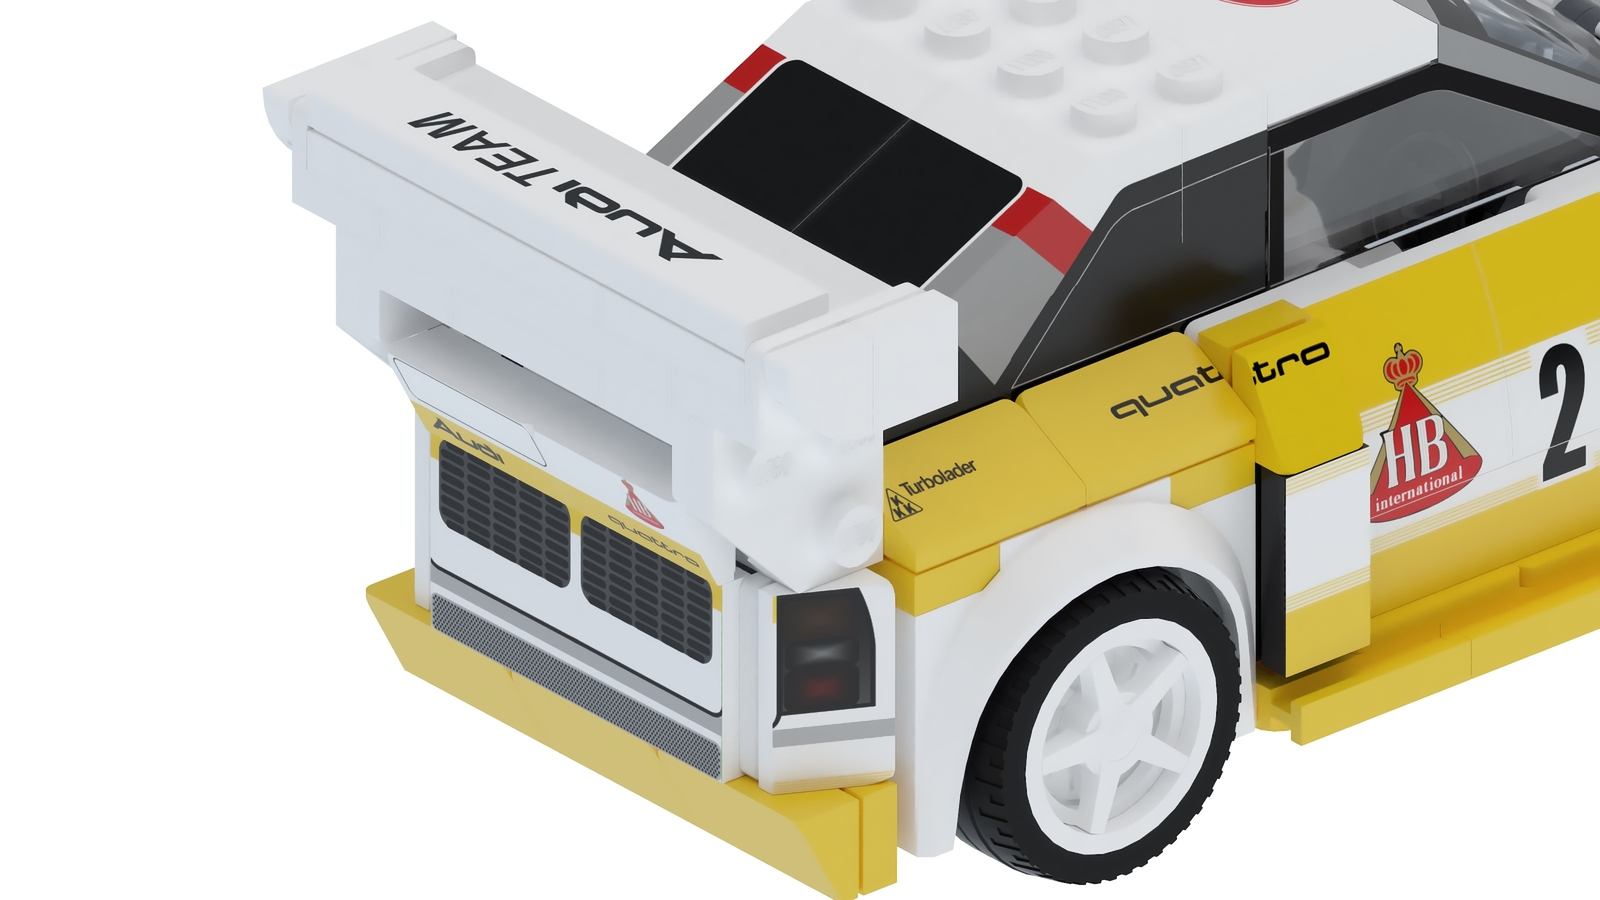 Audi Quattro S1 E2 Group B by Lego (14)